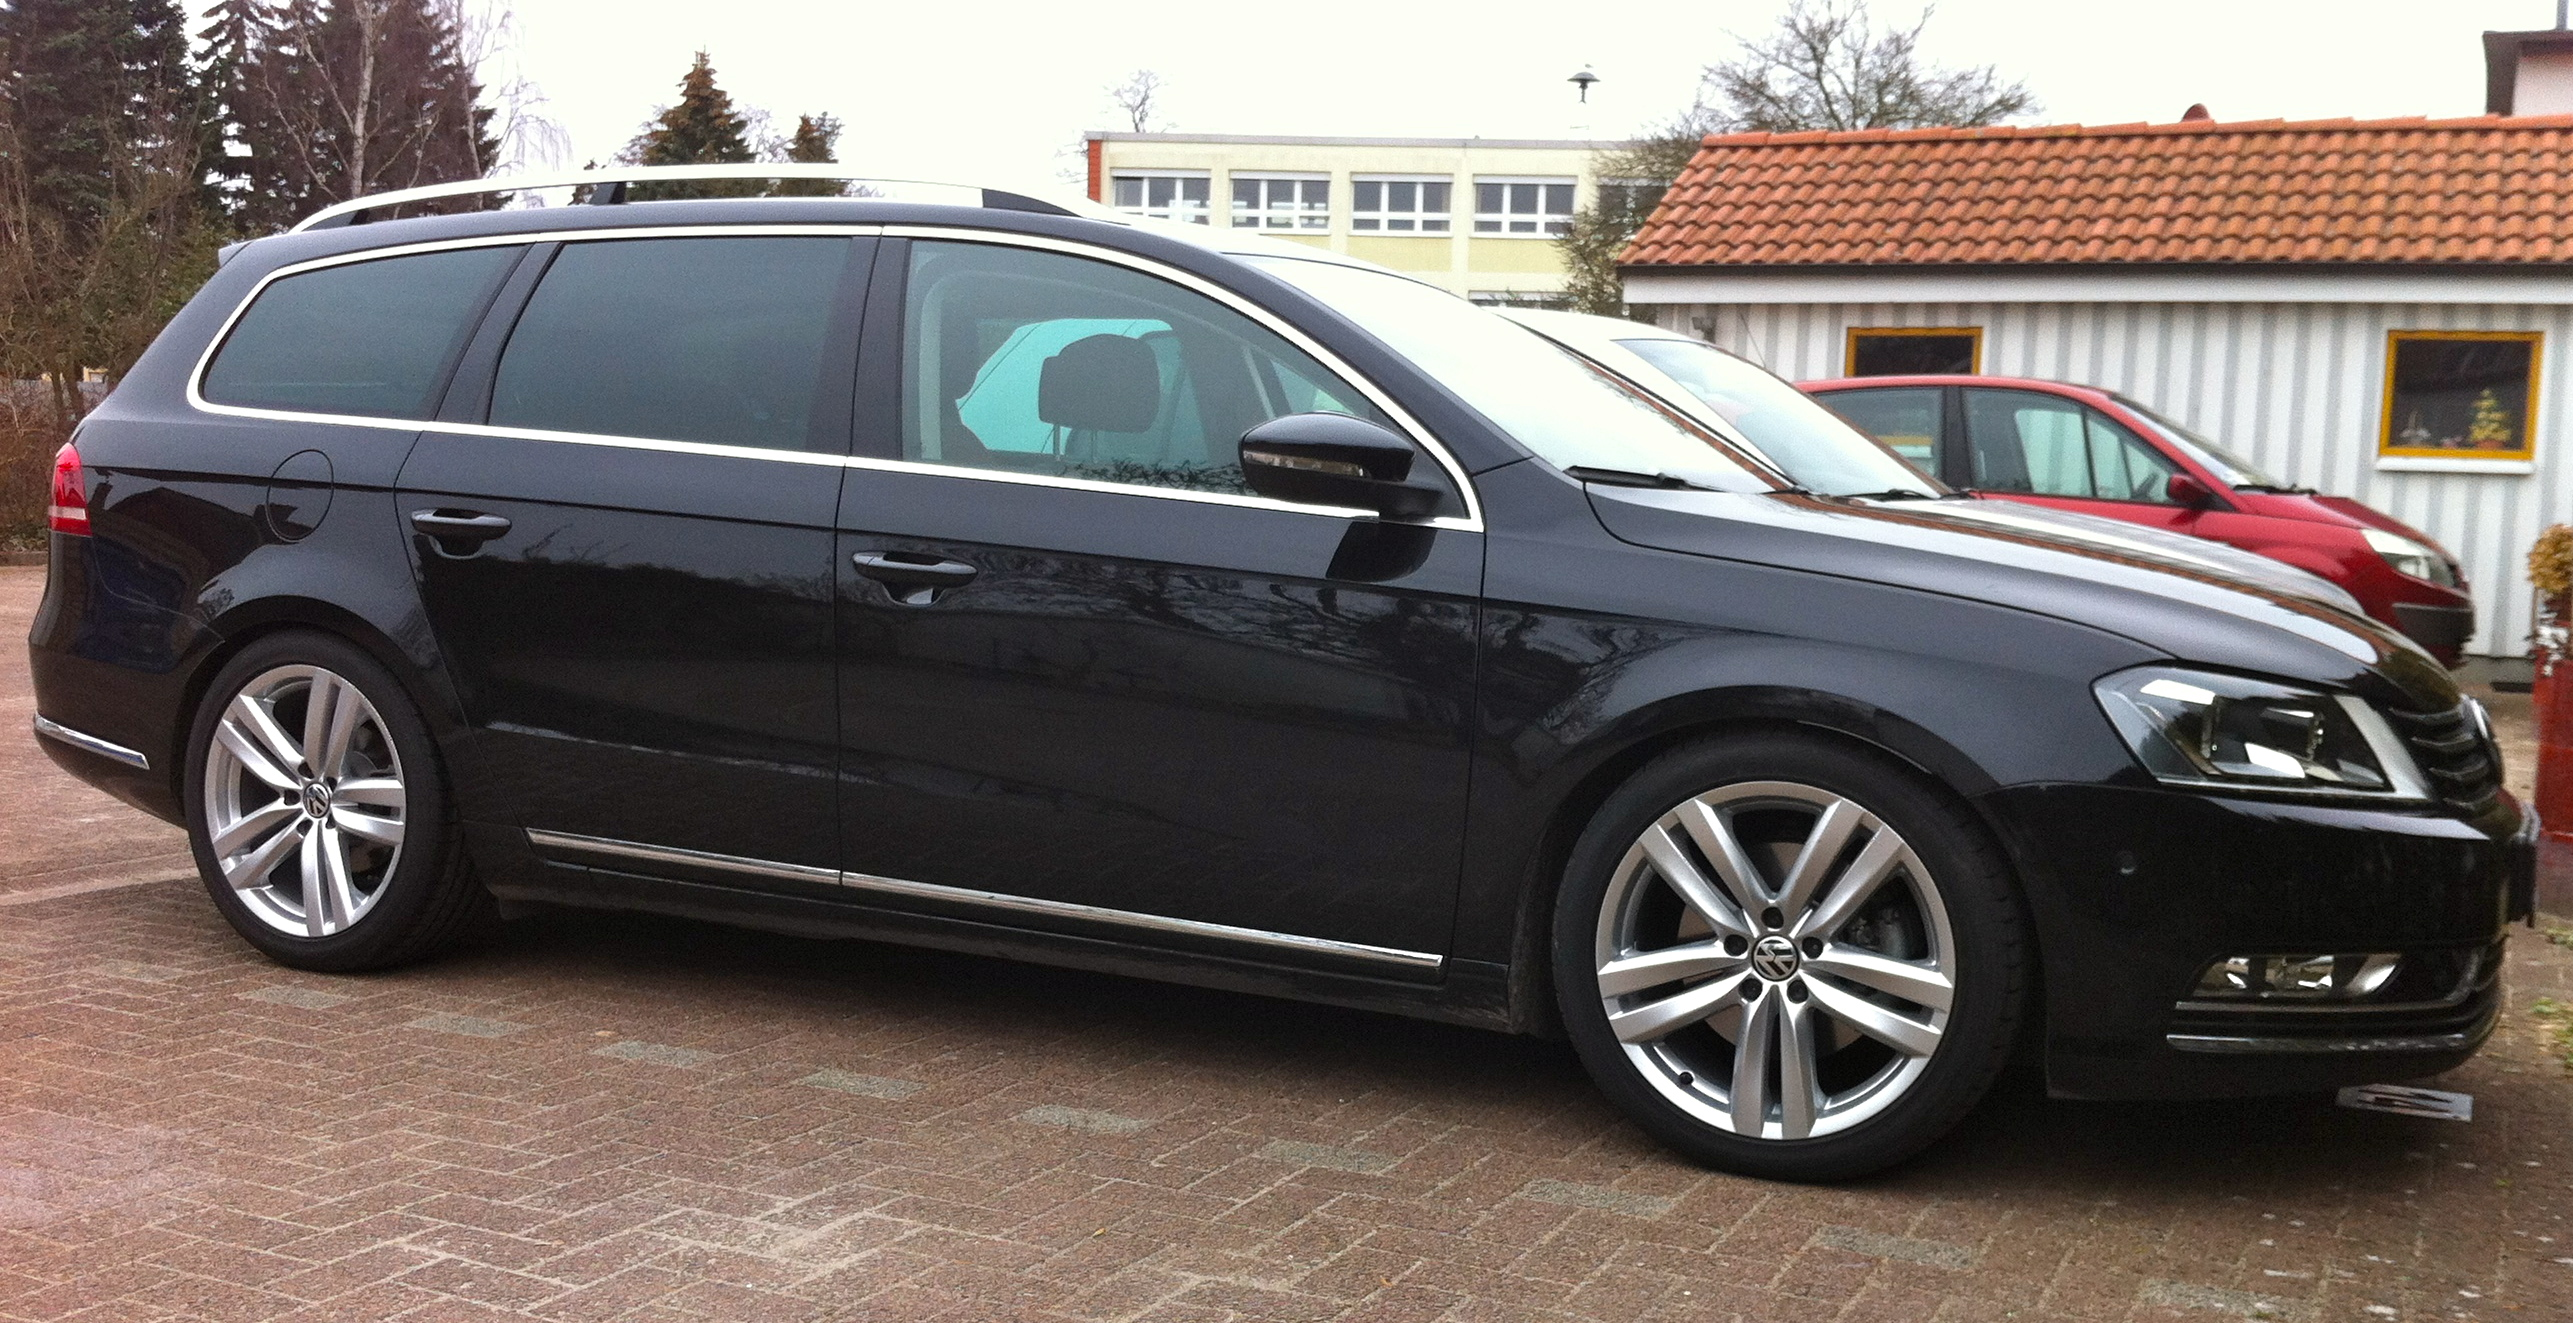 passat b7 variant tuning low volkswagen passat b7 variant. Black Bedroom Furniture Sets. Home Design Ideas